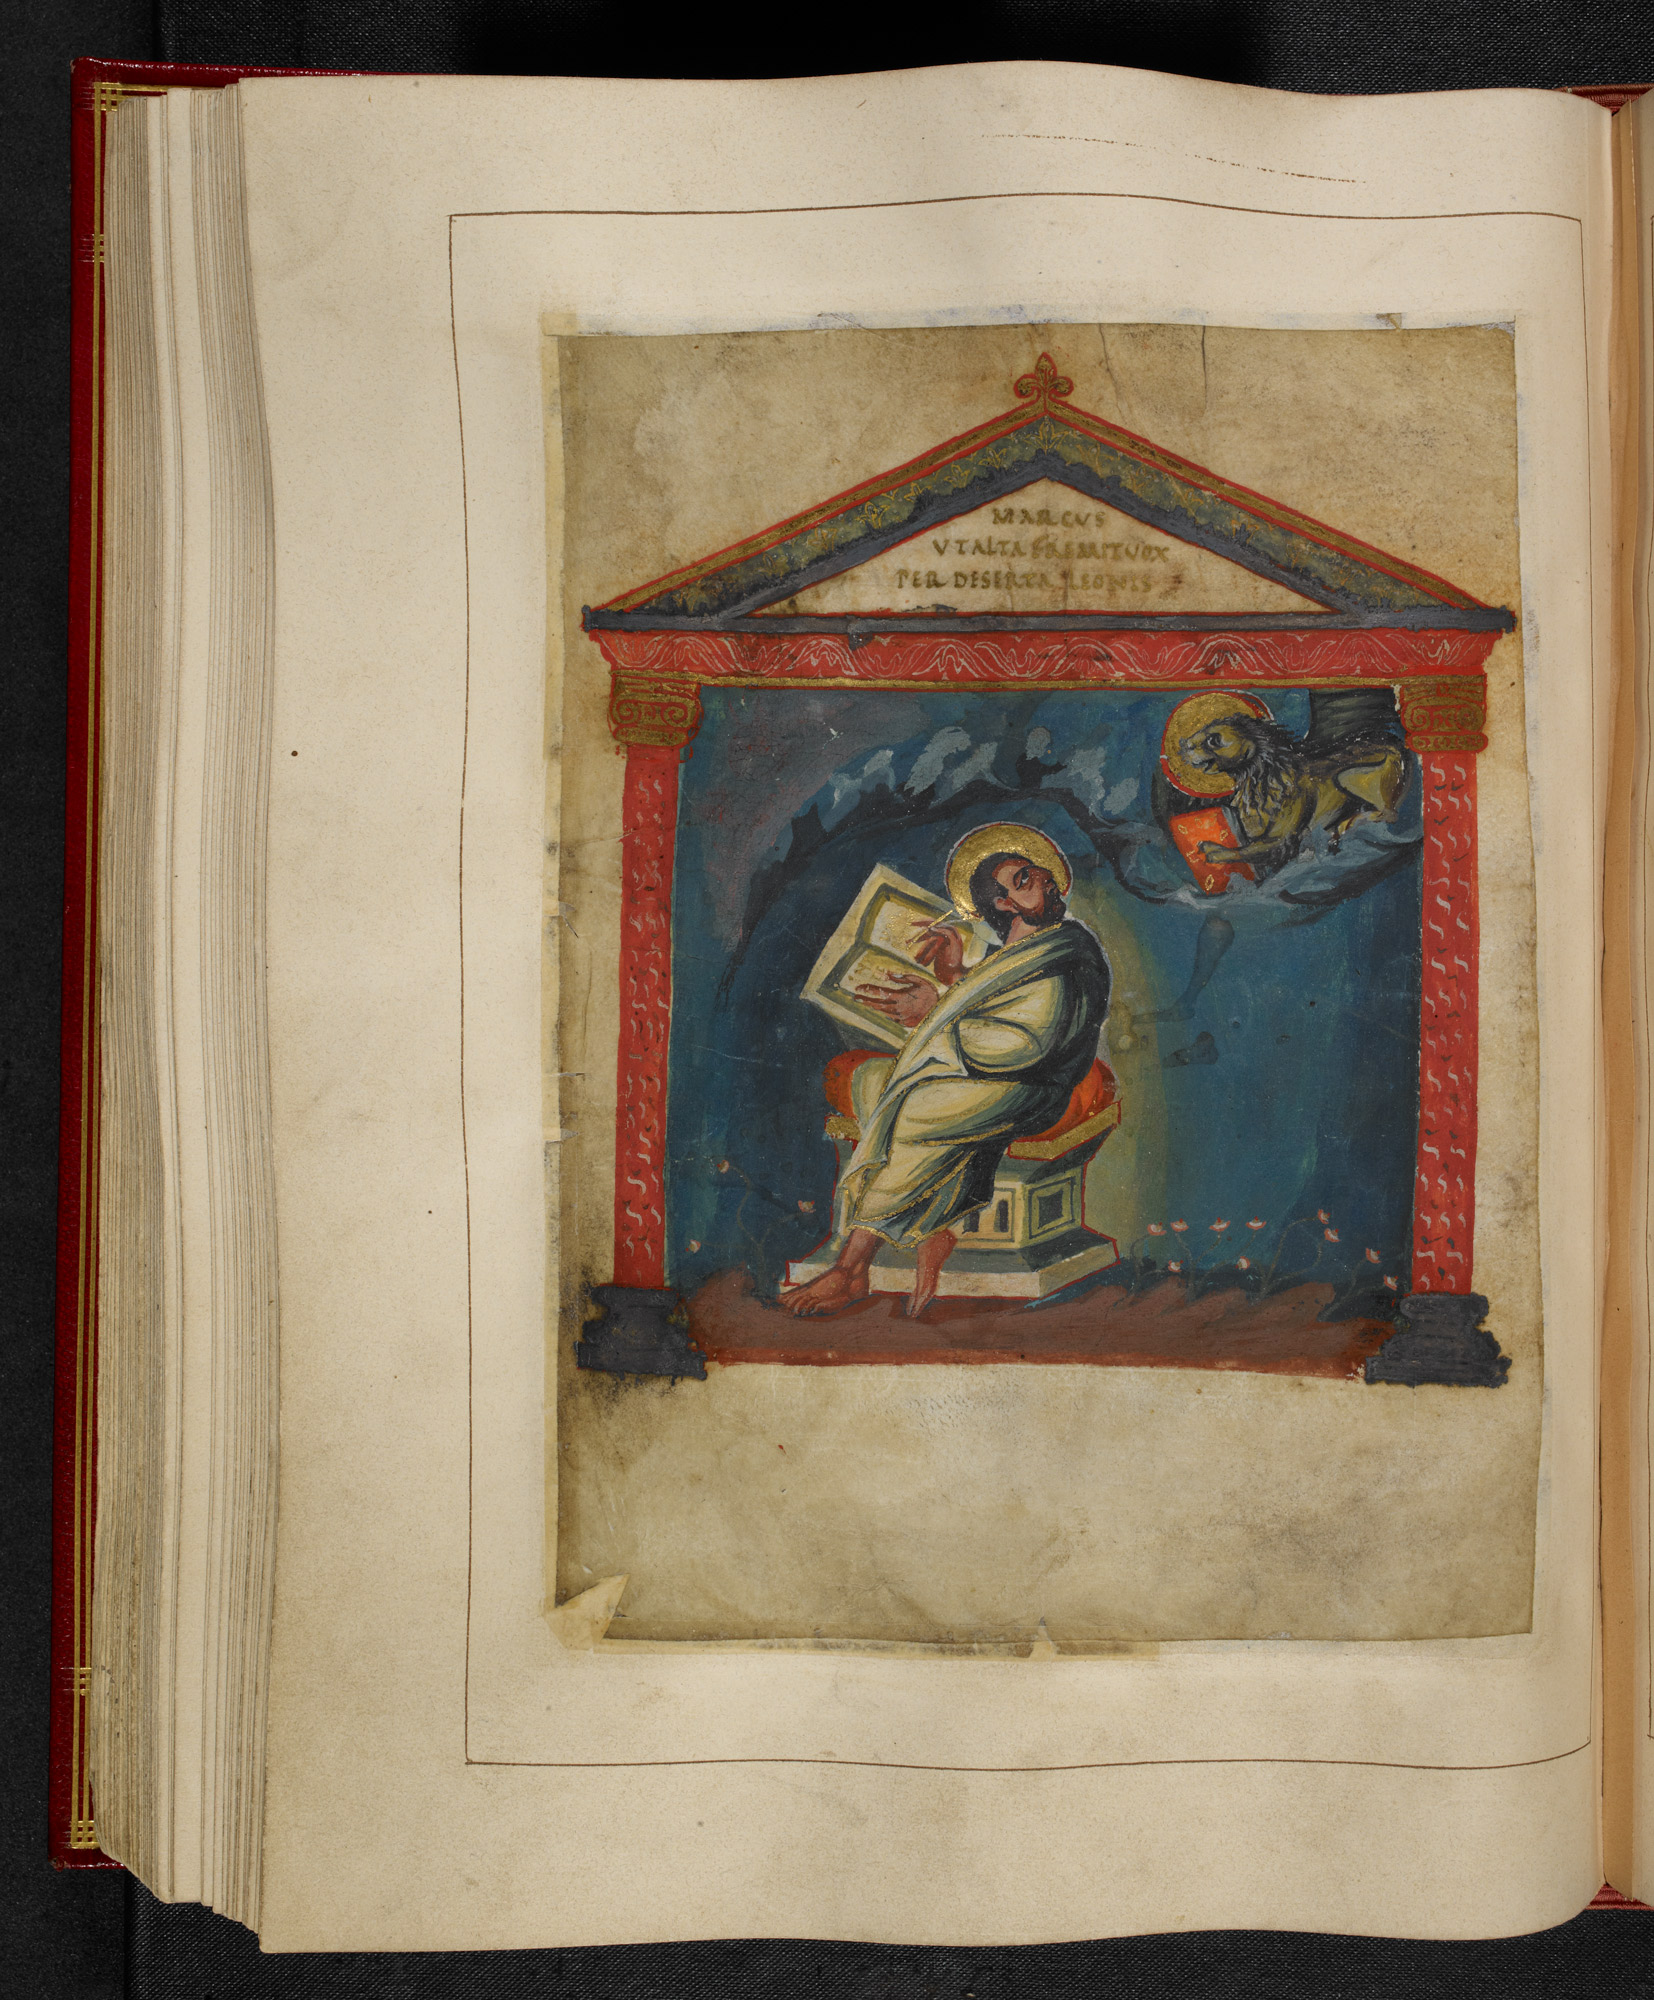 An illuminated page depicting an angel appearing to a scribe